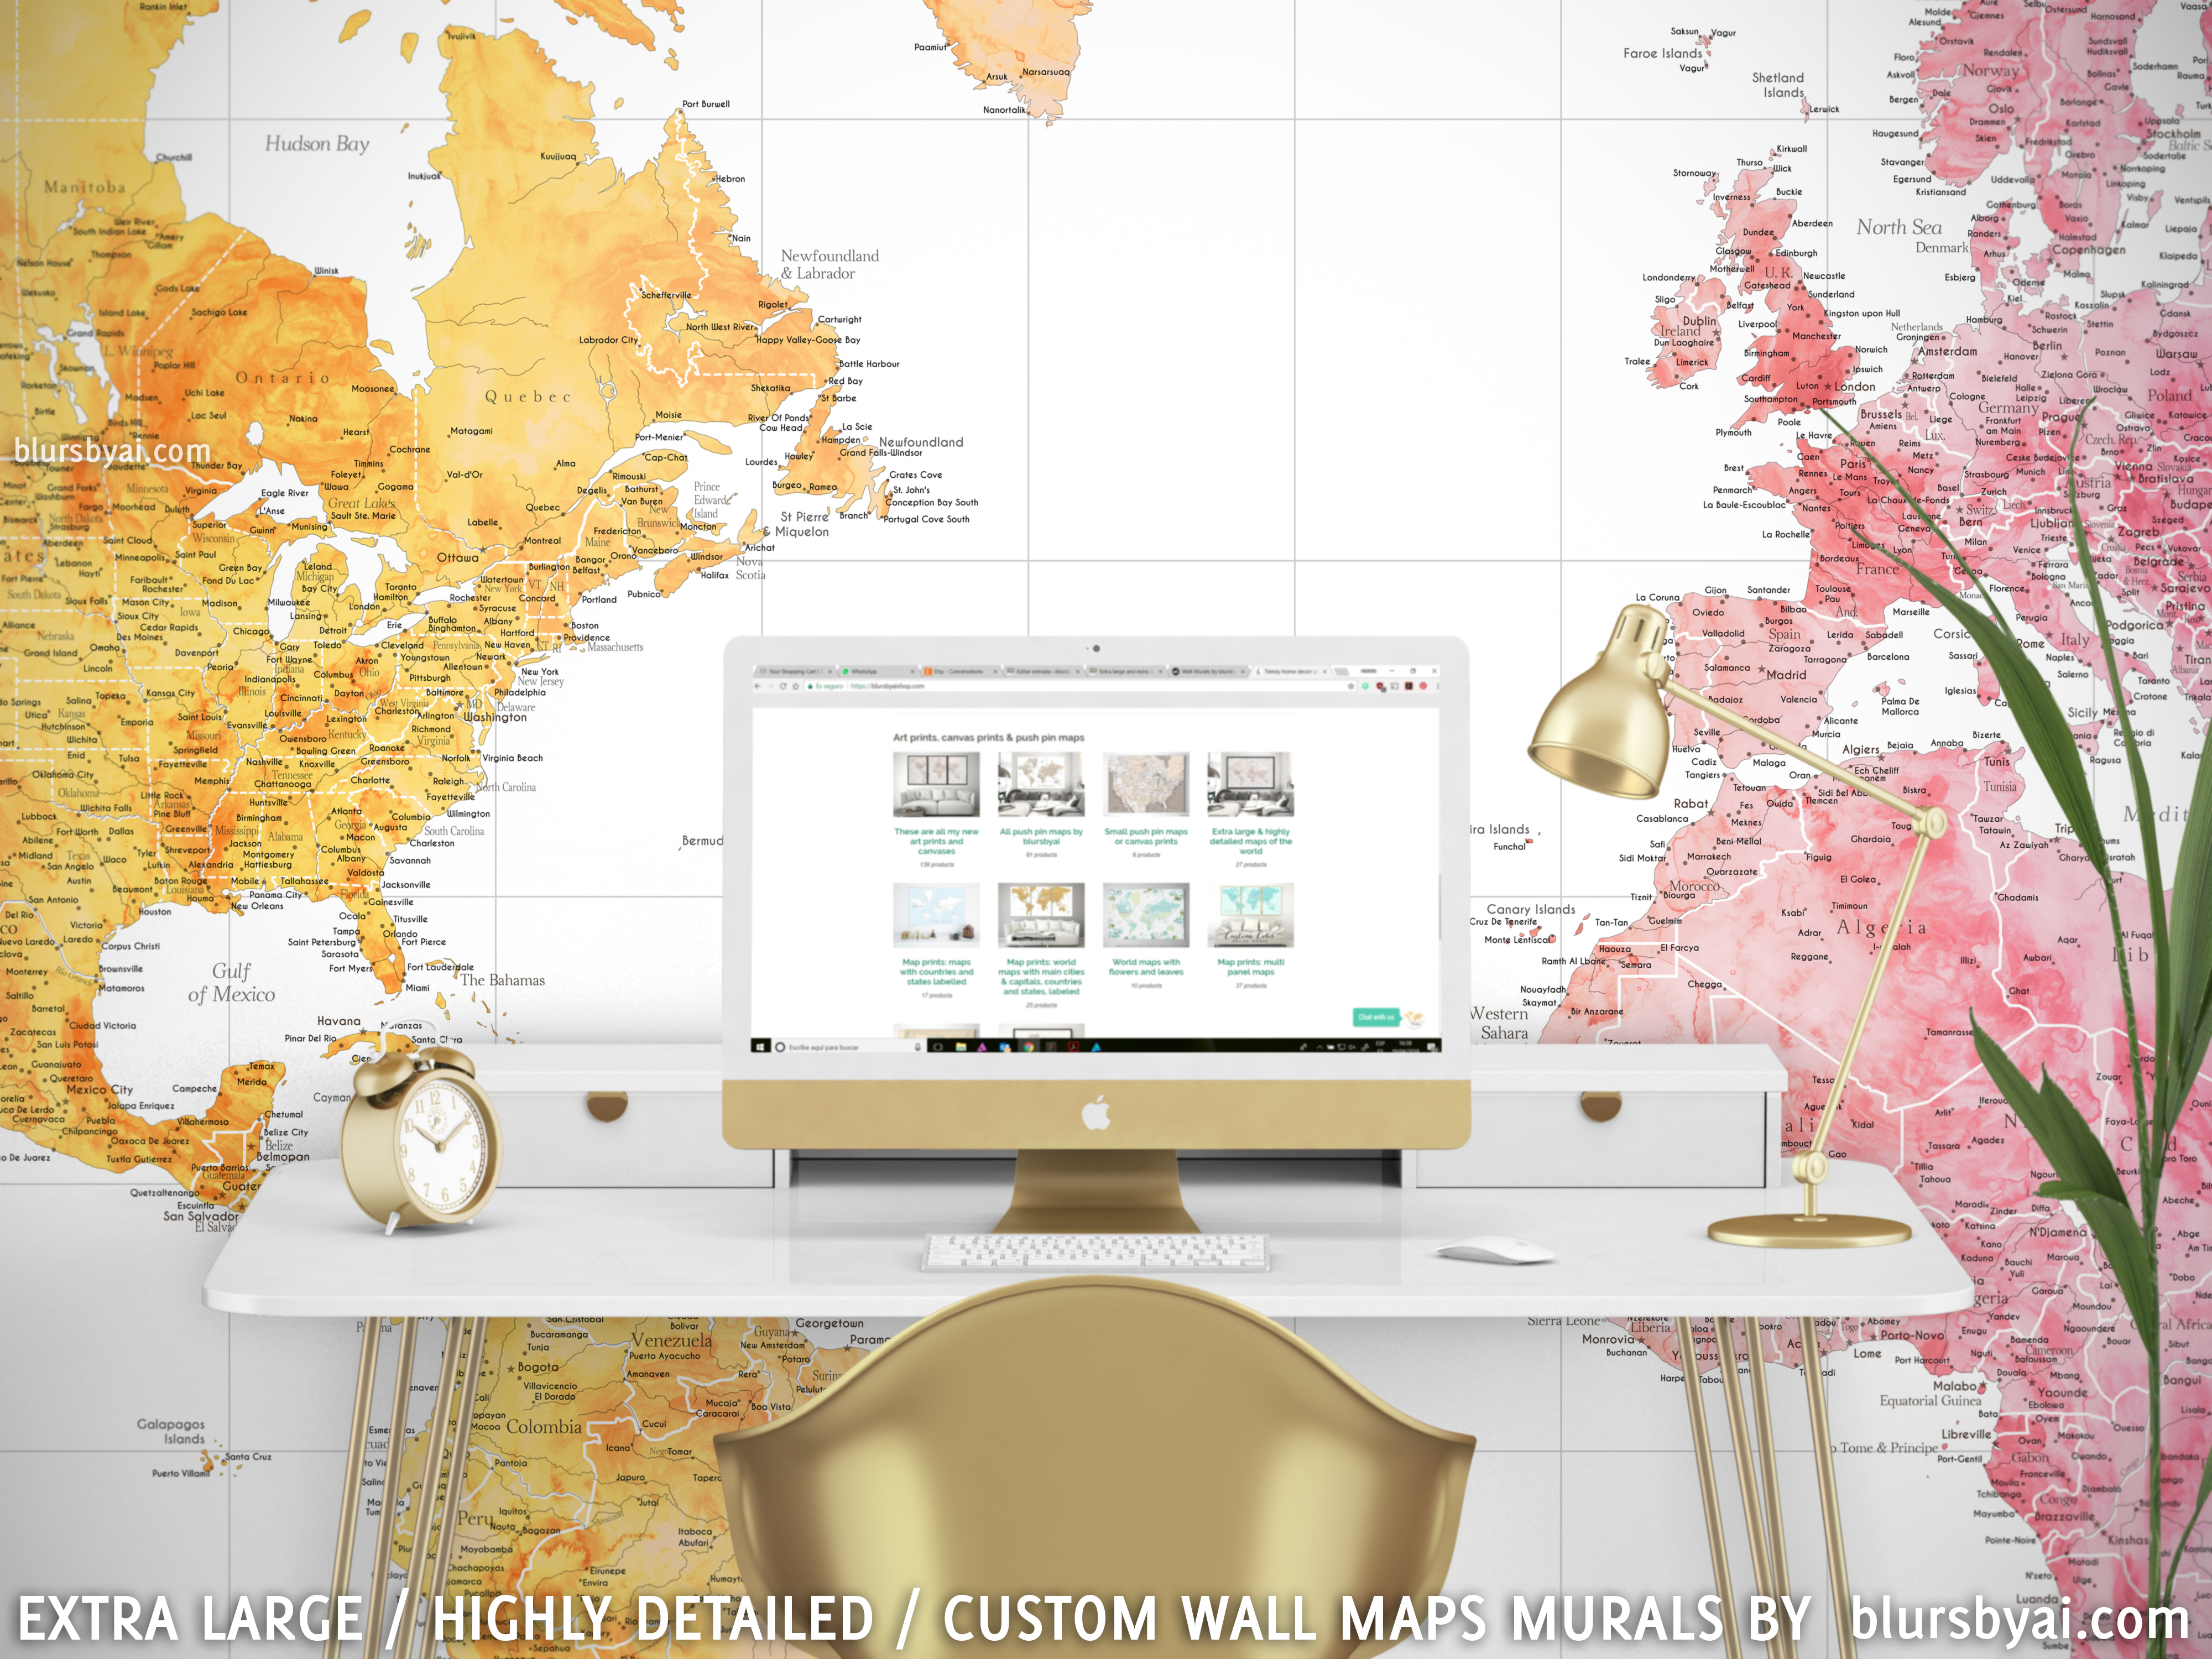 Extra large and extra detailed world map wall murals by blursbyai